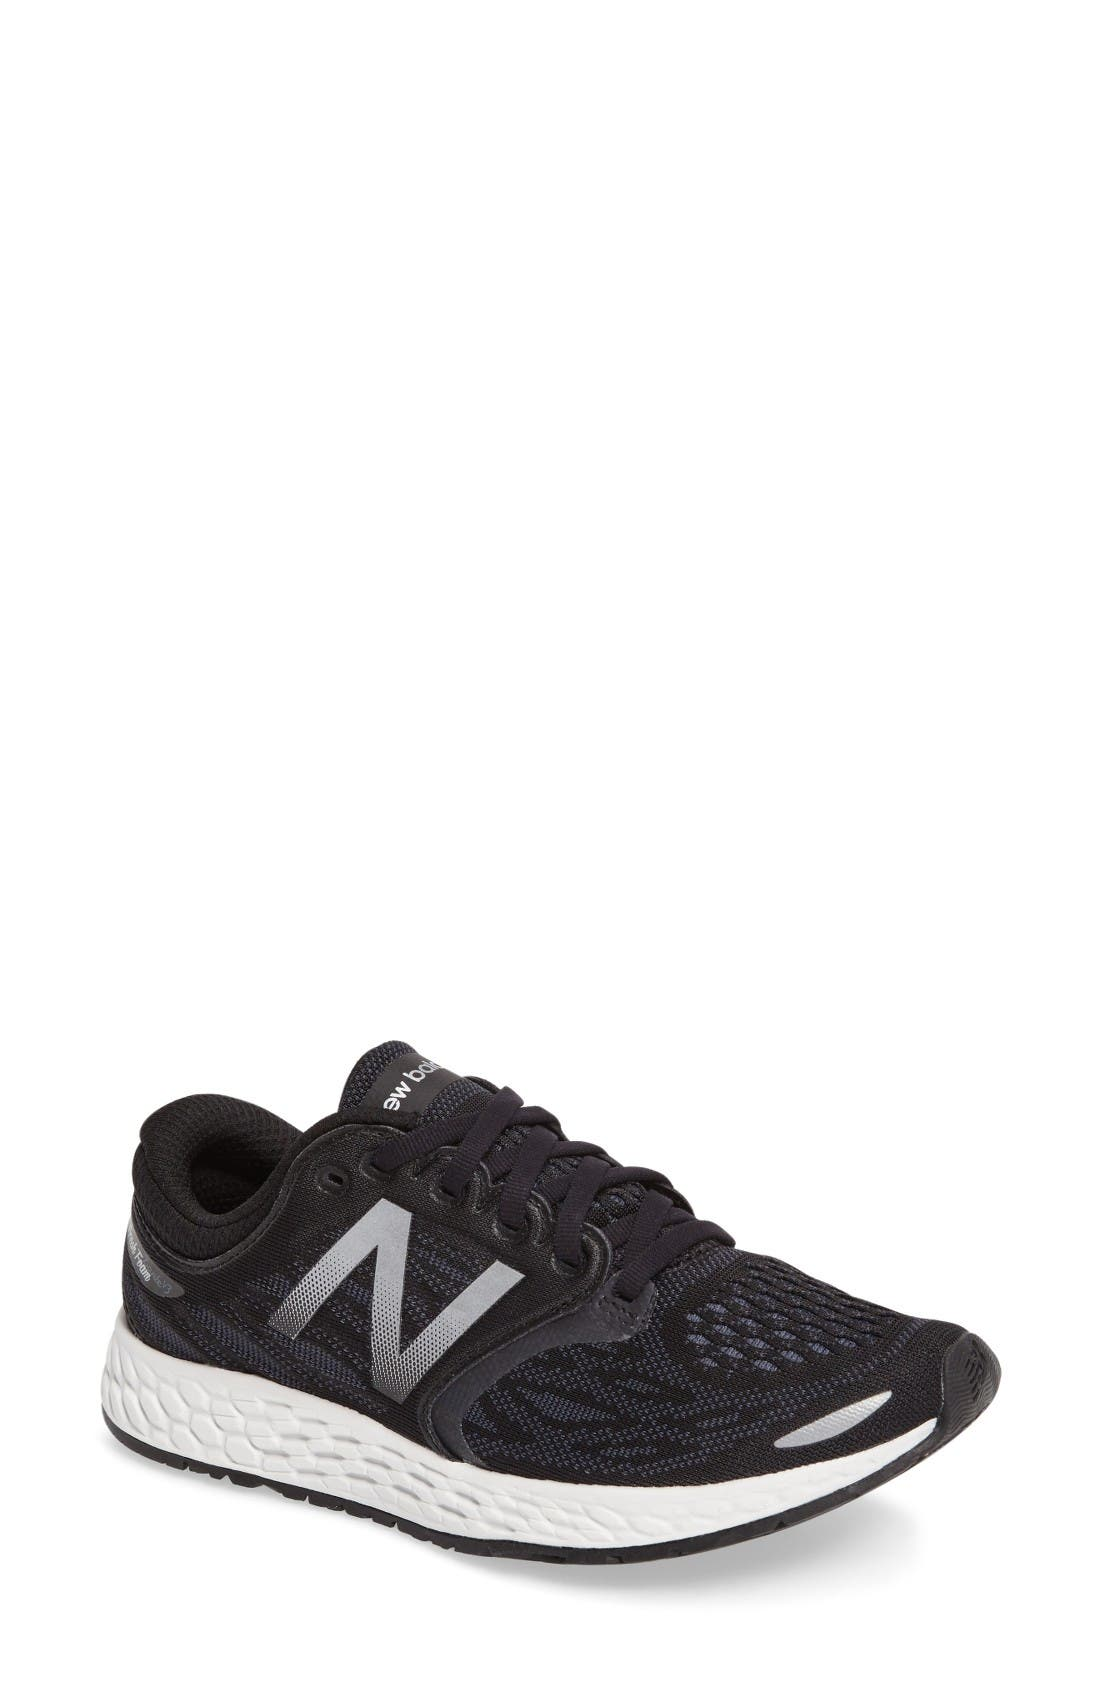 New Balance Zante V3 Running Shoe (Women)